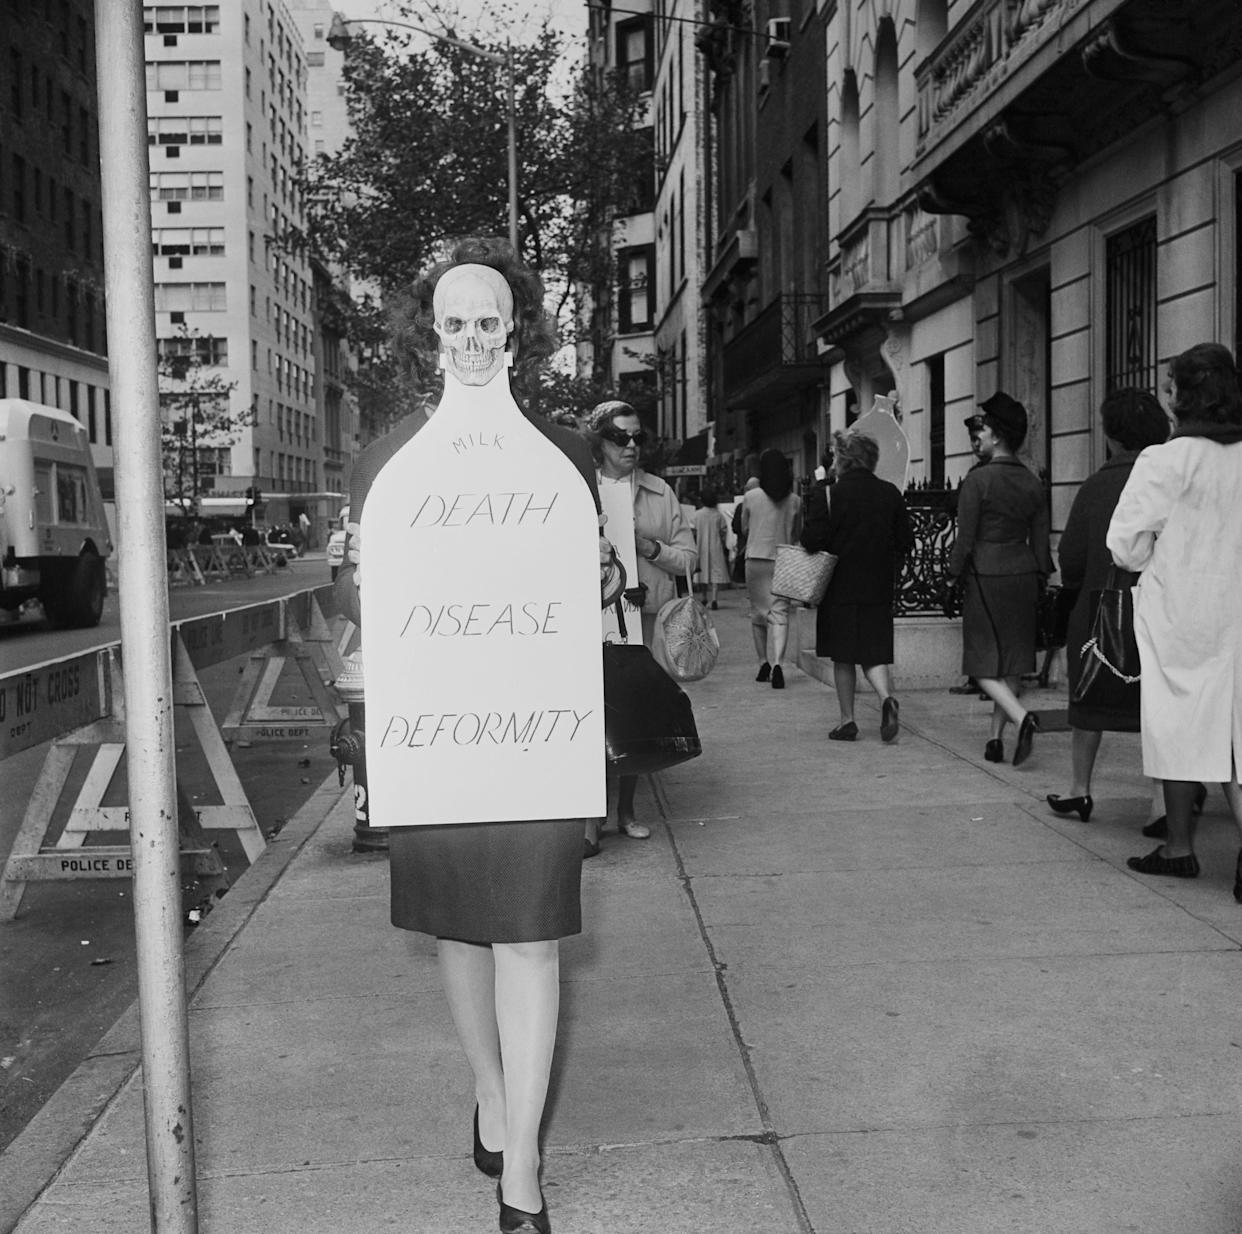 A group of women outside the Russian Mission to the United Nations in New York City protest the testing of nuclear arms on Nov. 1, 1961. They are part of the Women's Strike for Peace, a one-day demonstration by American women in many cities throughout the United States.